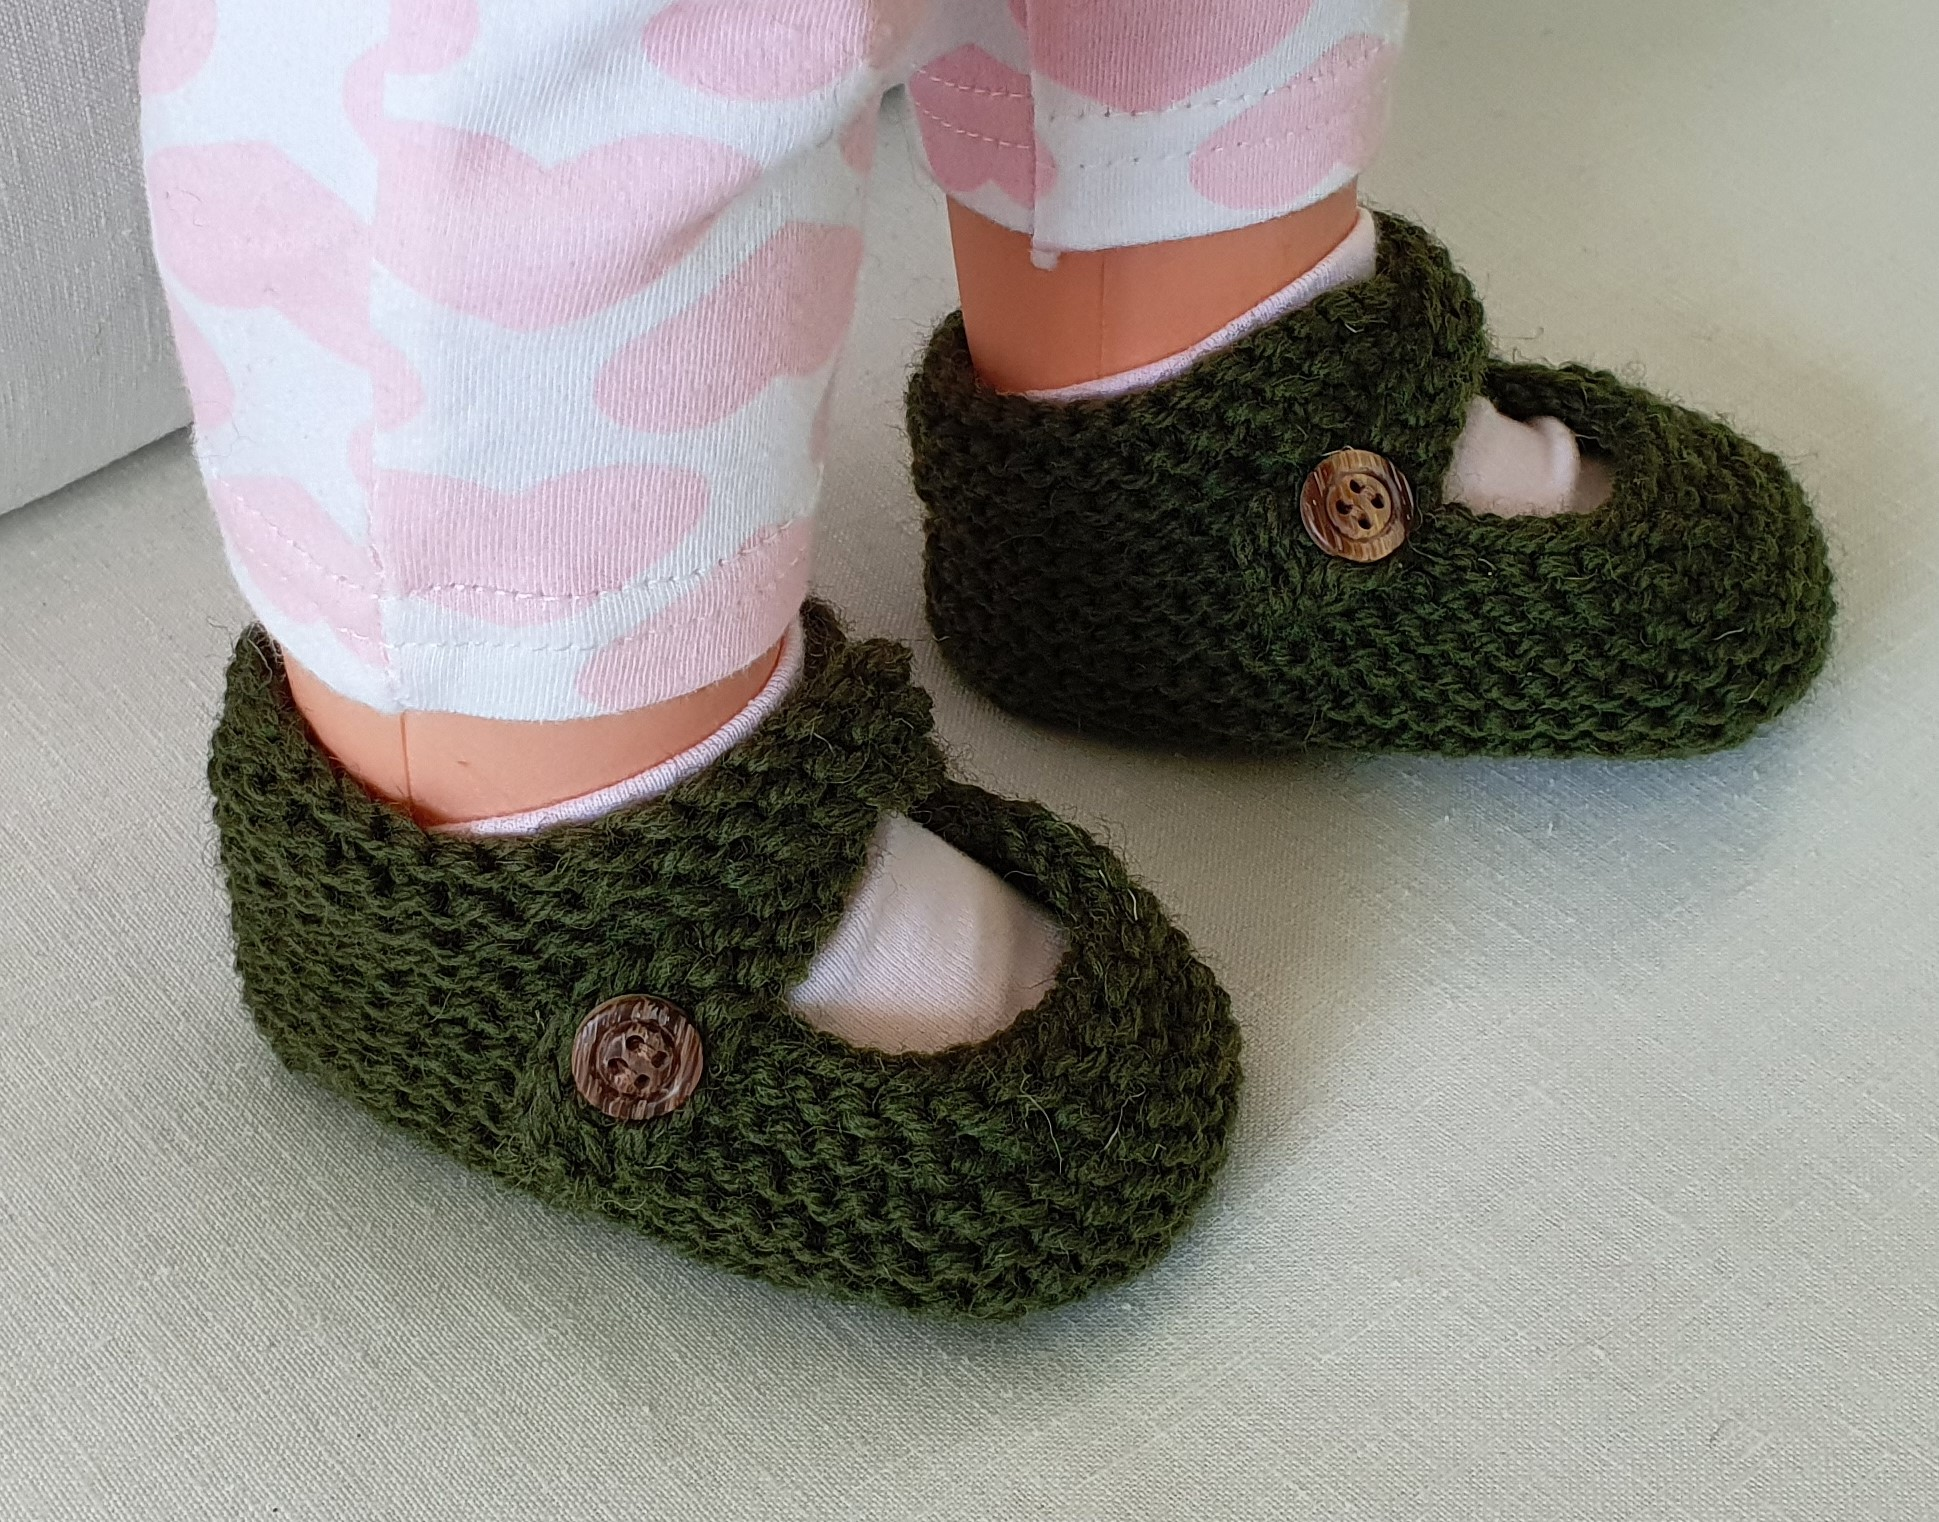 f7894c629 Knitting Patterns Online - Knitting Patterns For 8ply Baby Shoes ...